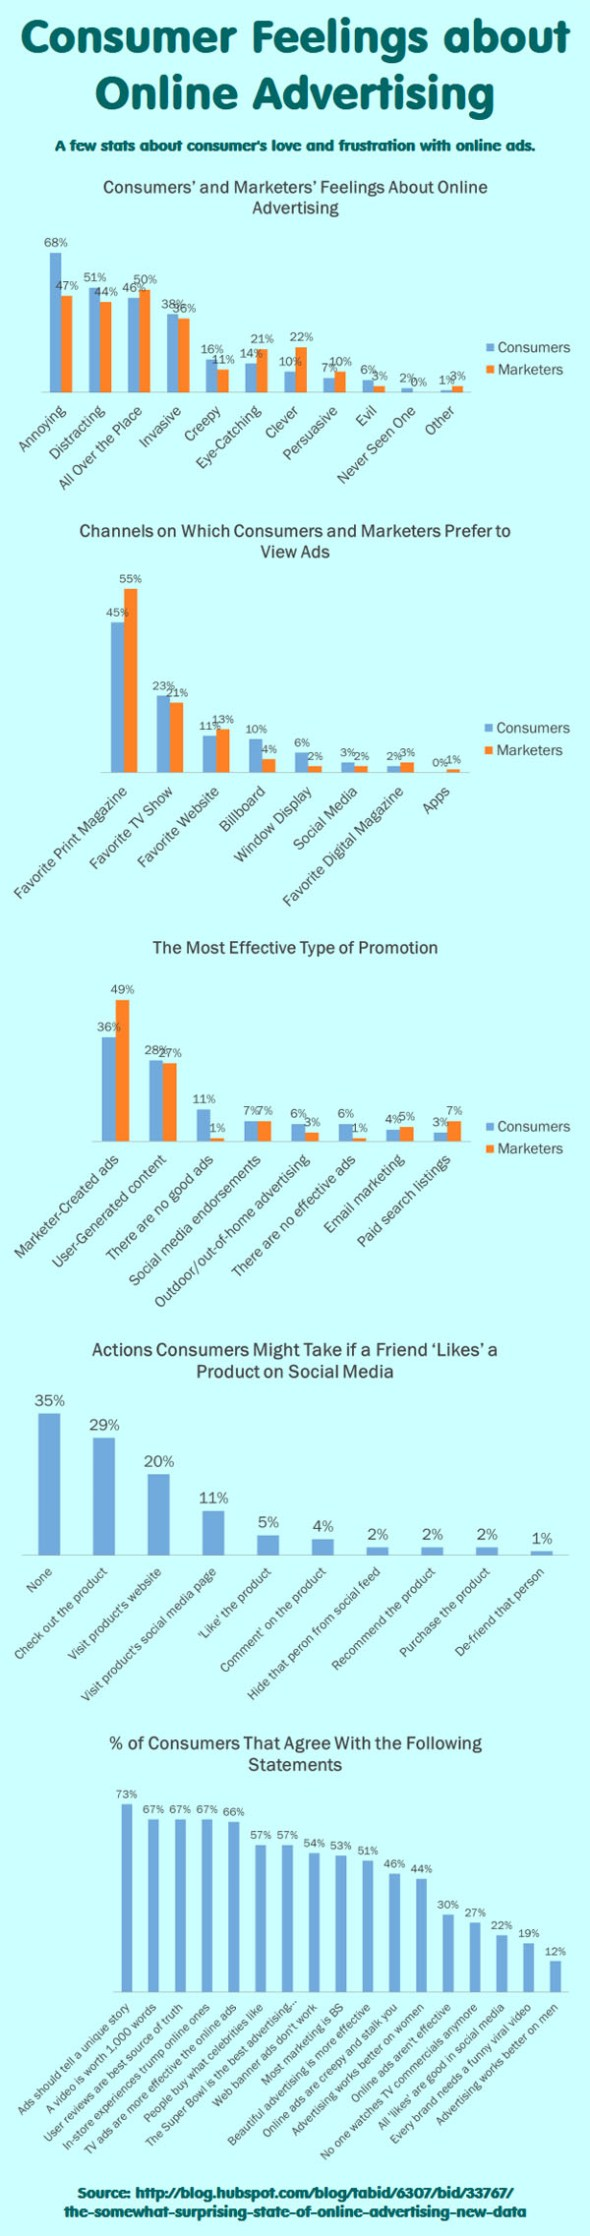 Consumer Feelings About Online Ads